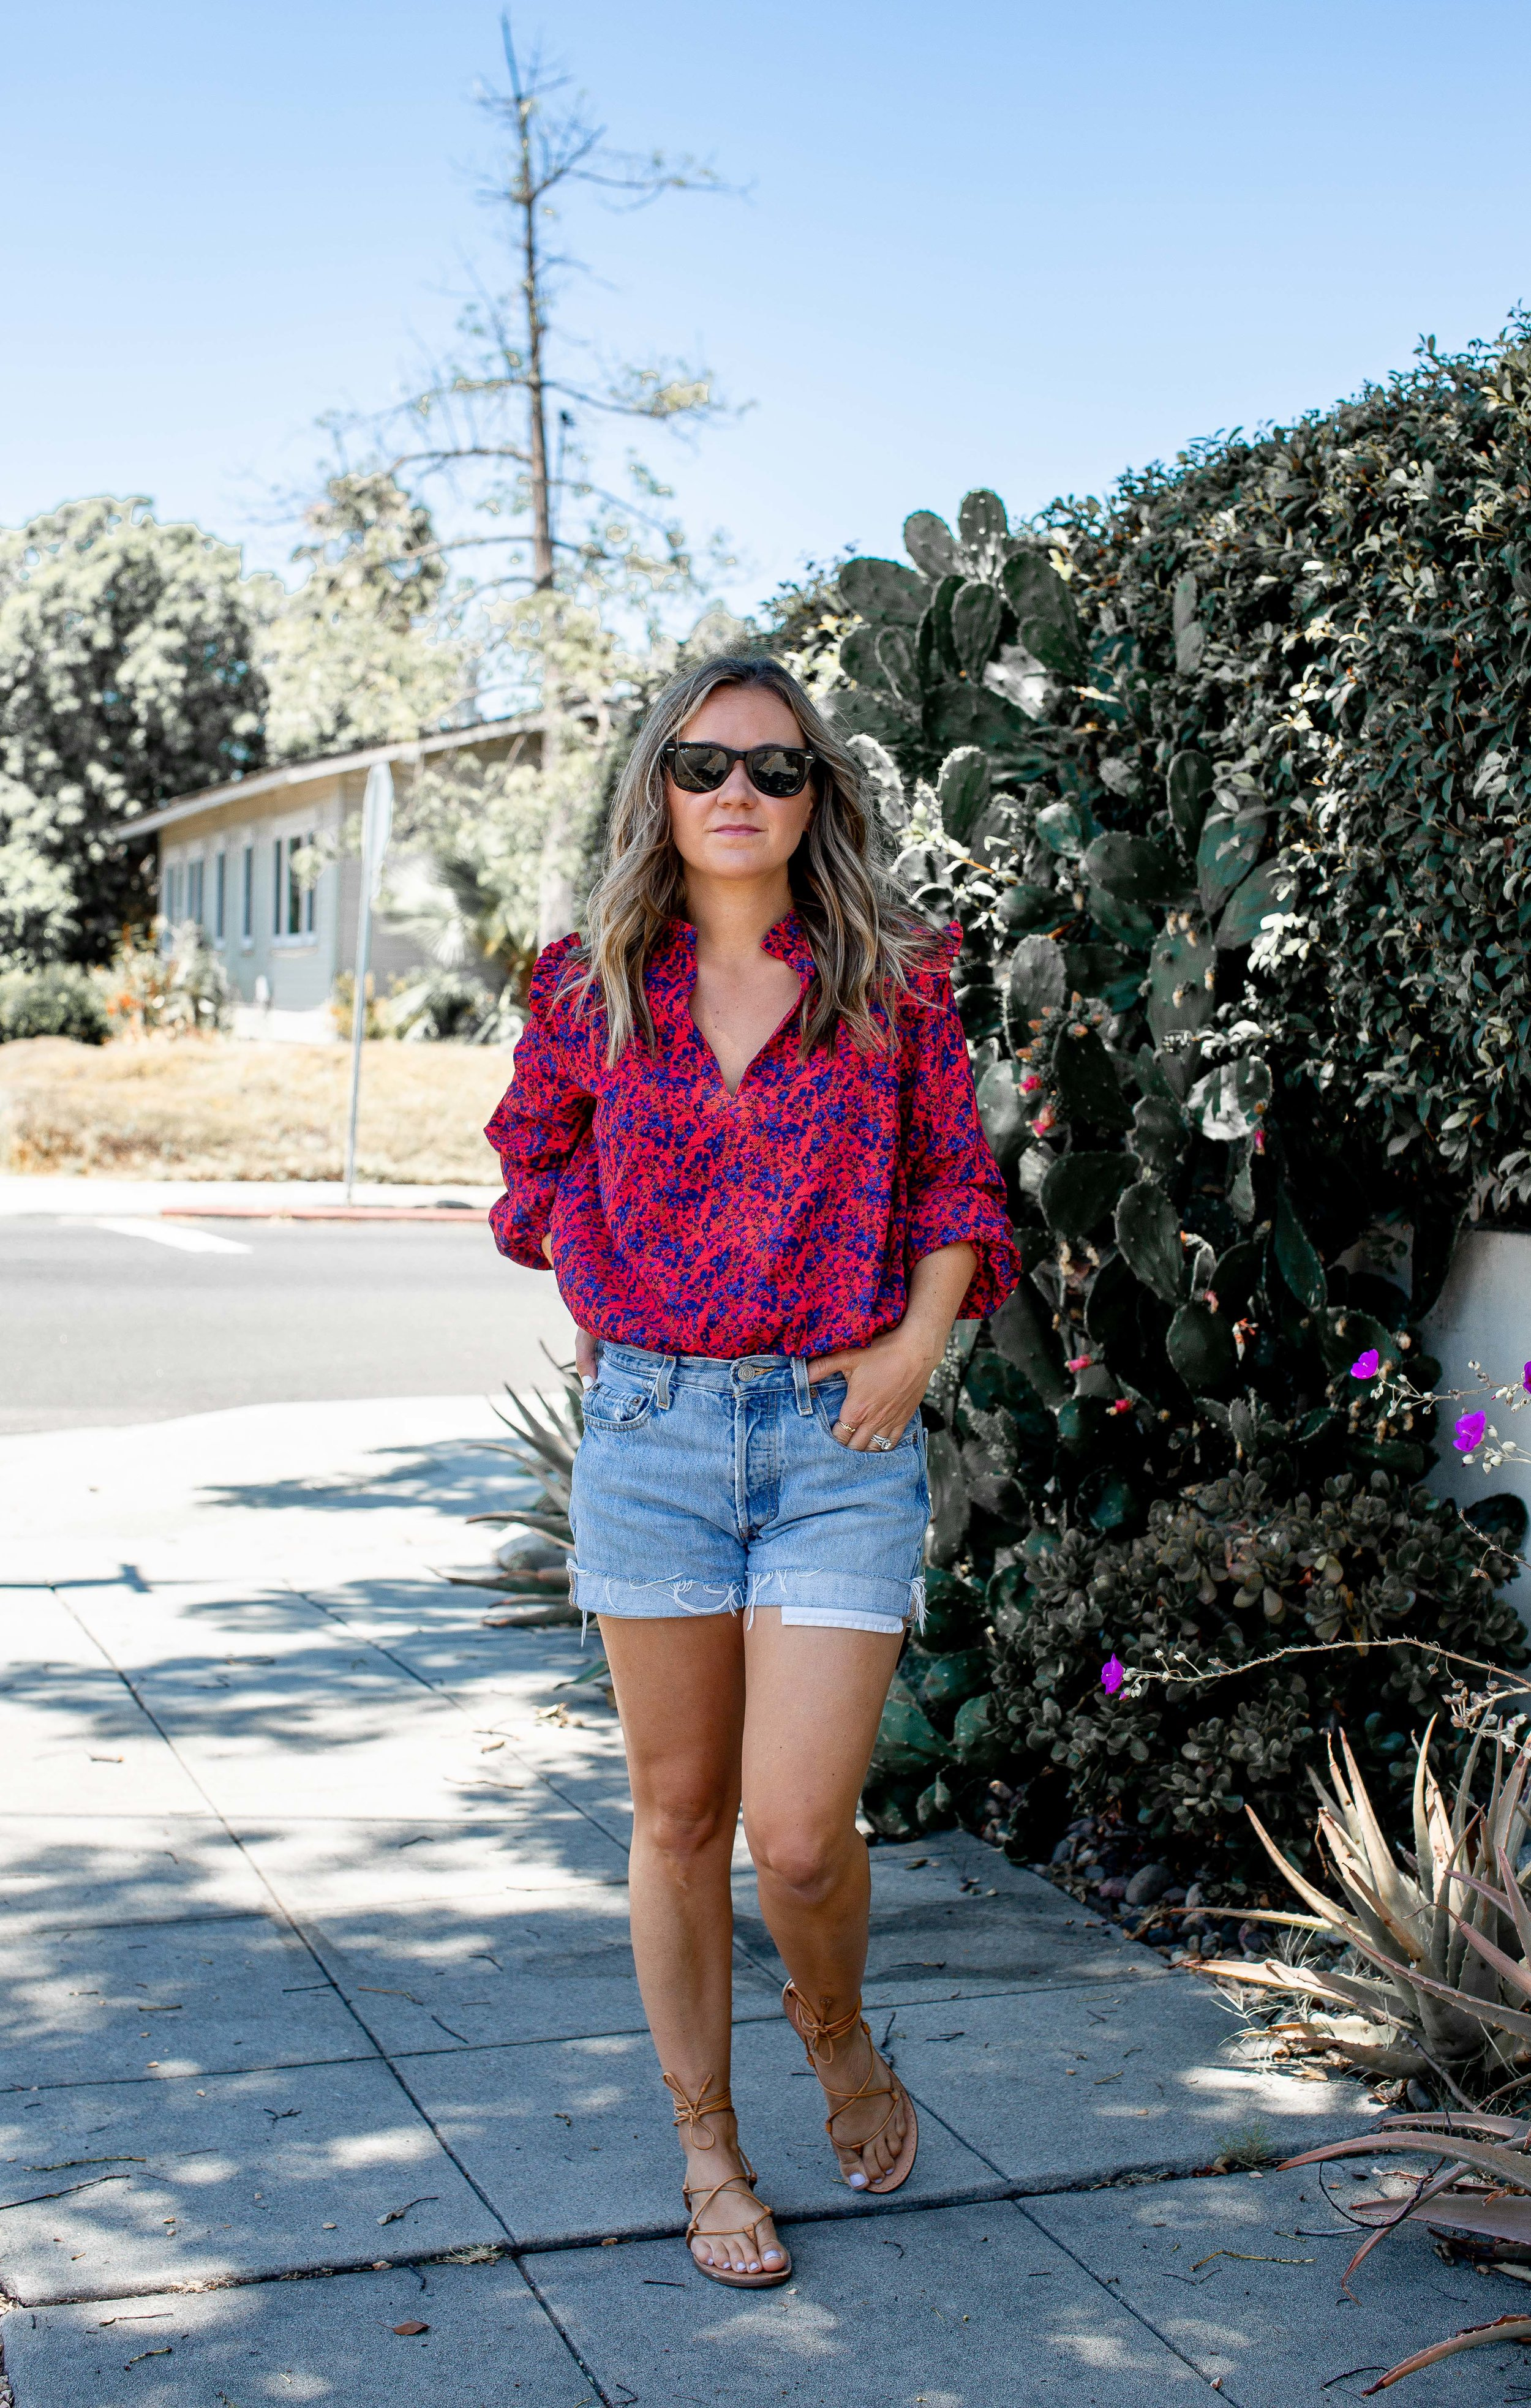 fizz-fade-red-floral-blouse-5.jpg